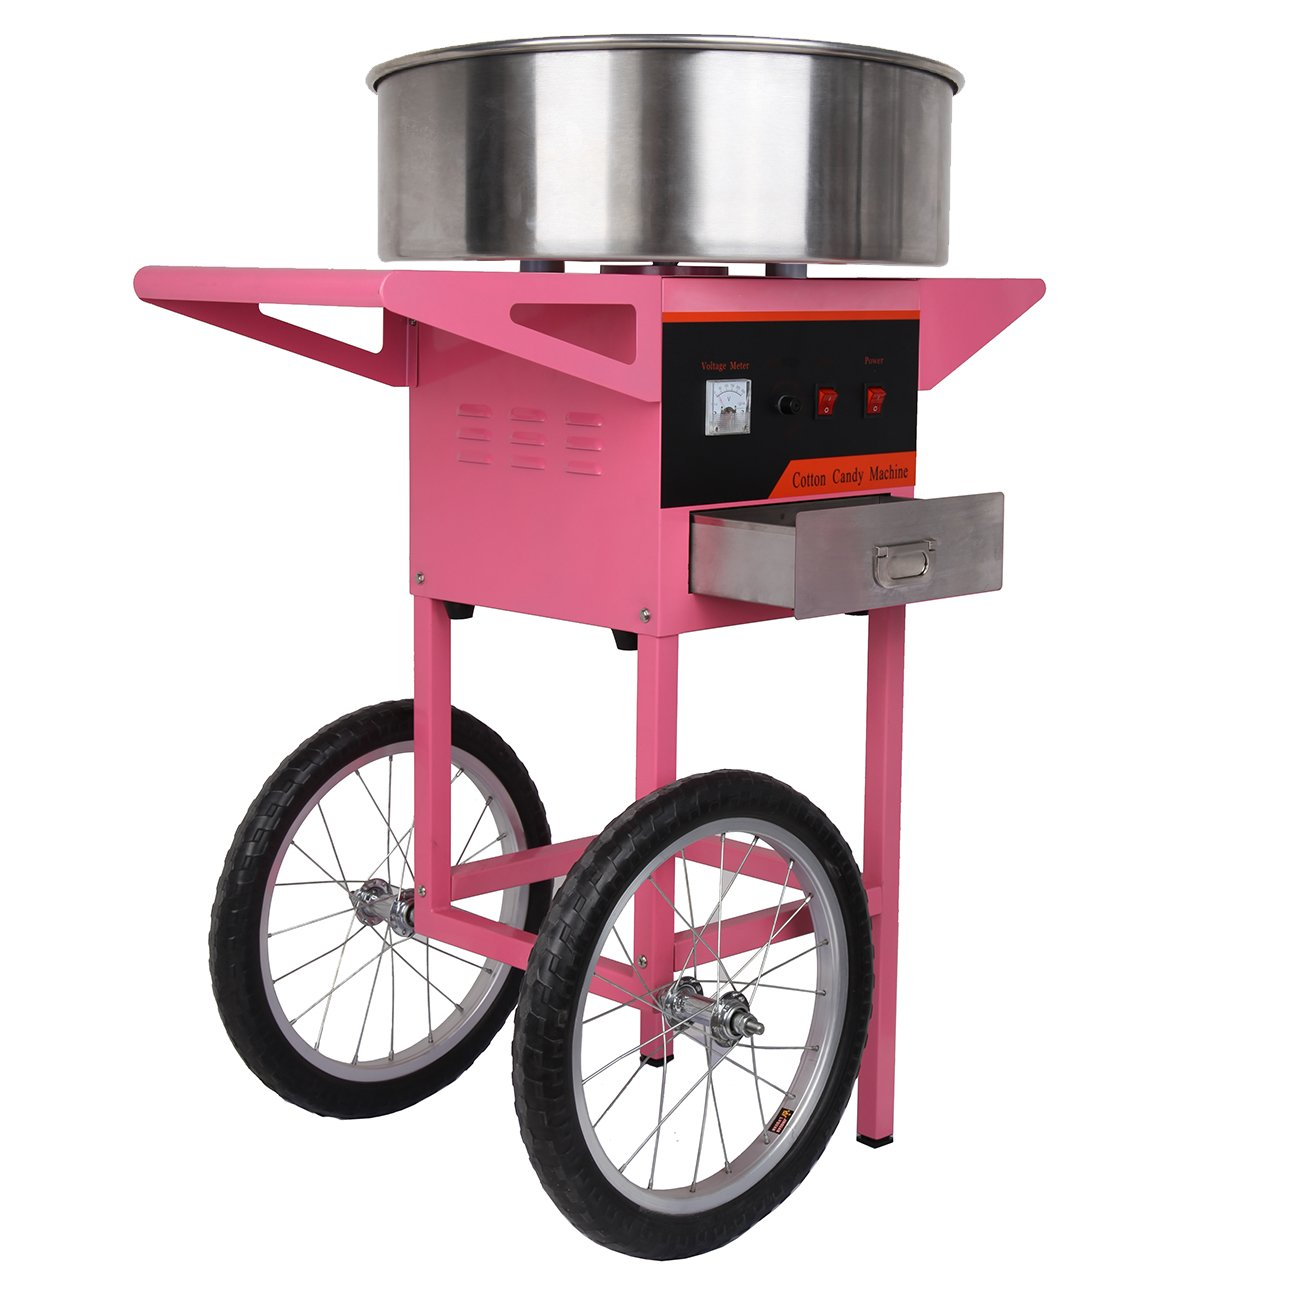 Iglobalbuy Candy Floss Machine,1300W electric Candy Cotton Maker Pink